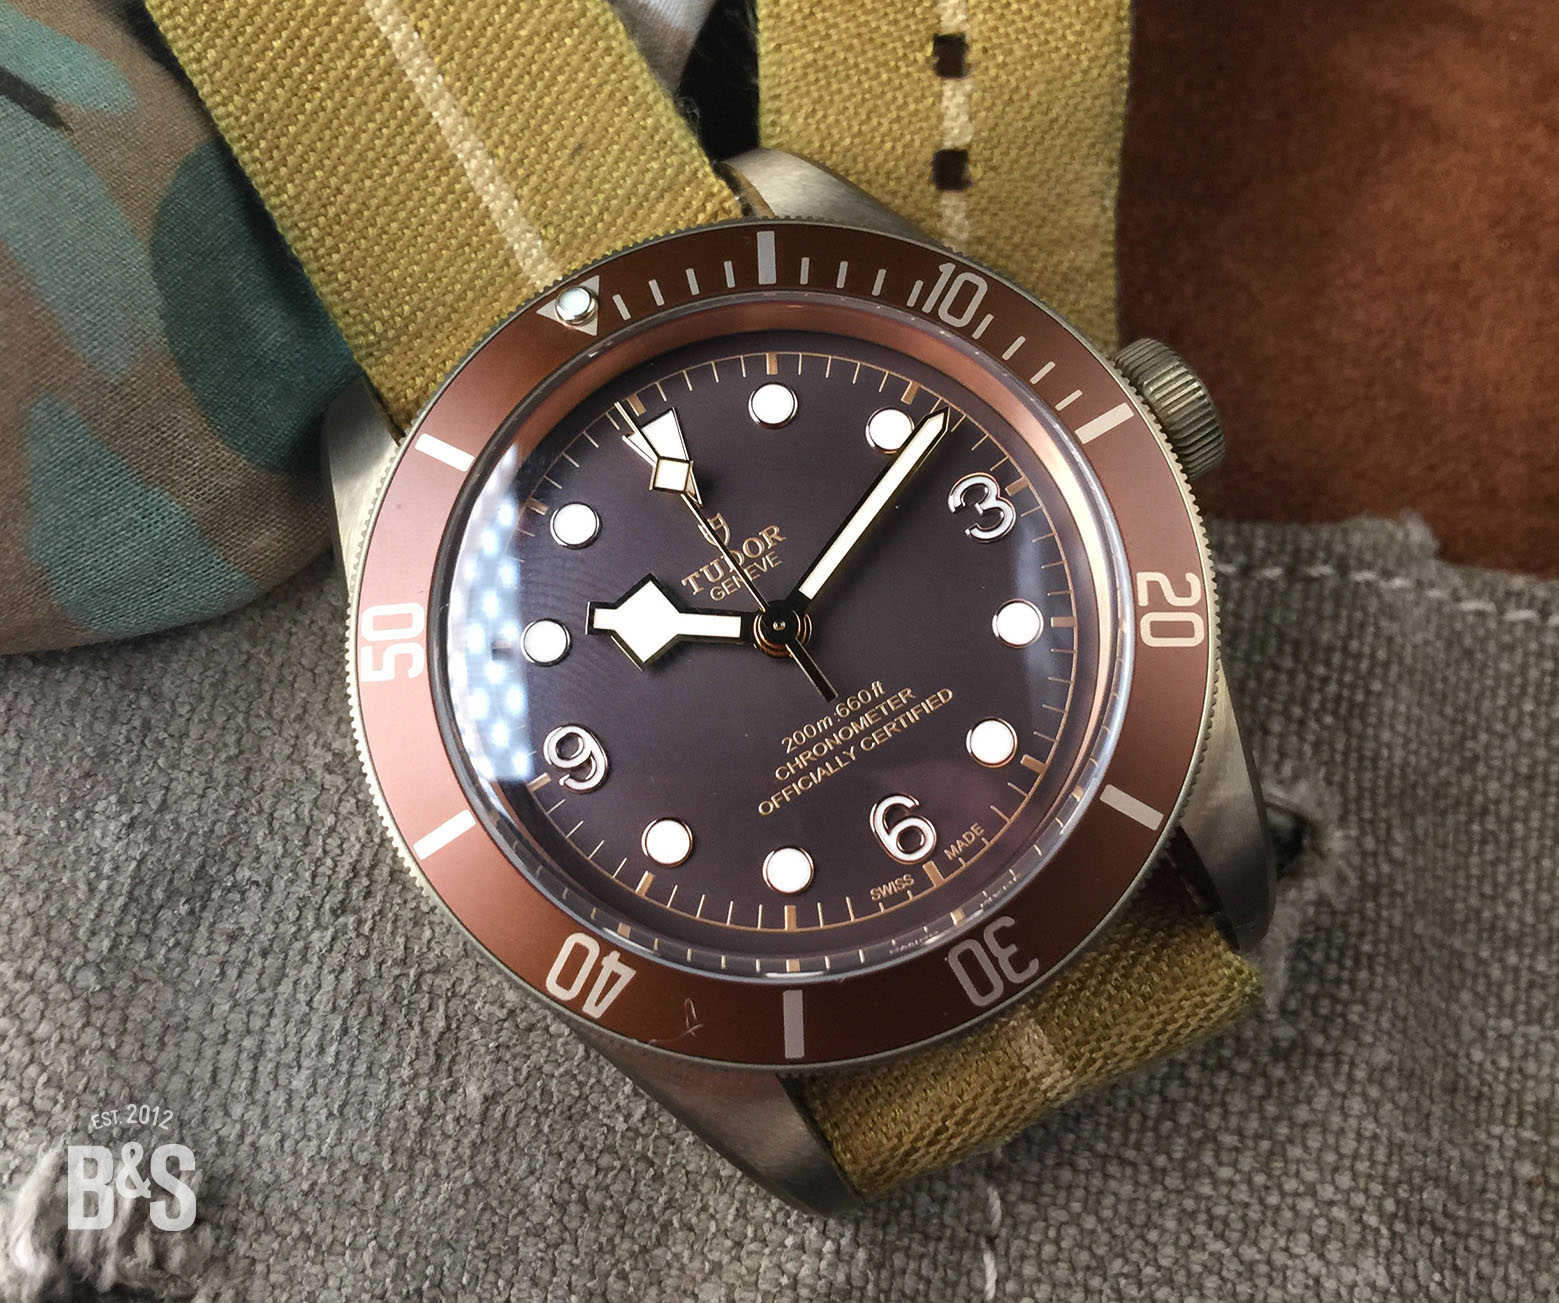 Bulang & Sons at Baselworld 2016 with the New Tudor Black Bay Bronze and Dark